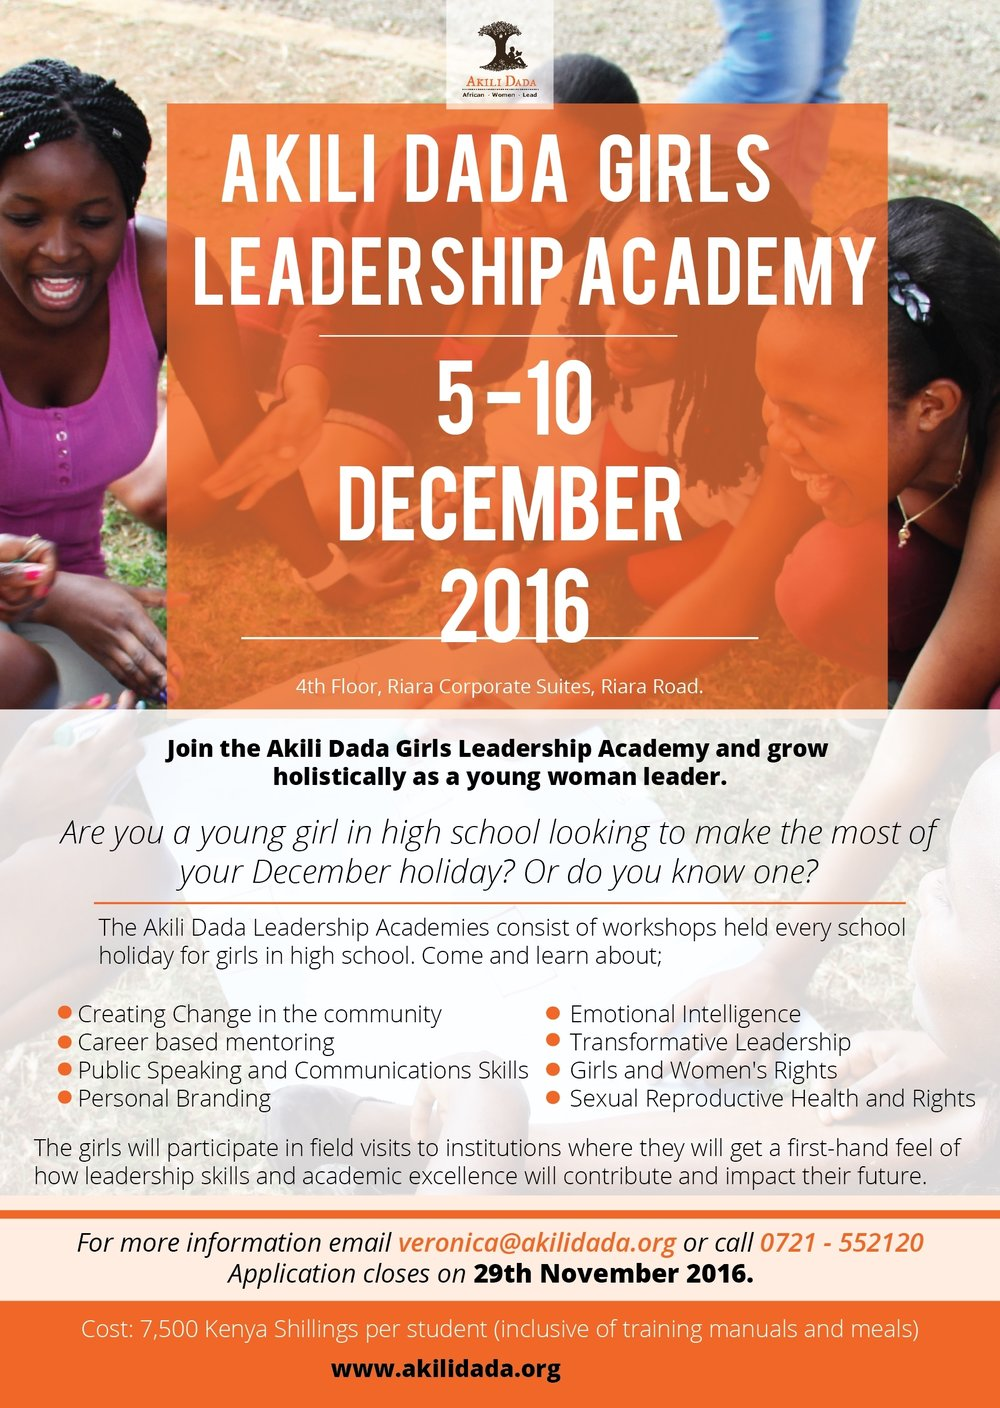 Join the December Holiday Girls Leadership Academy